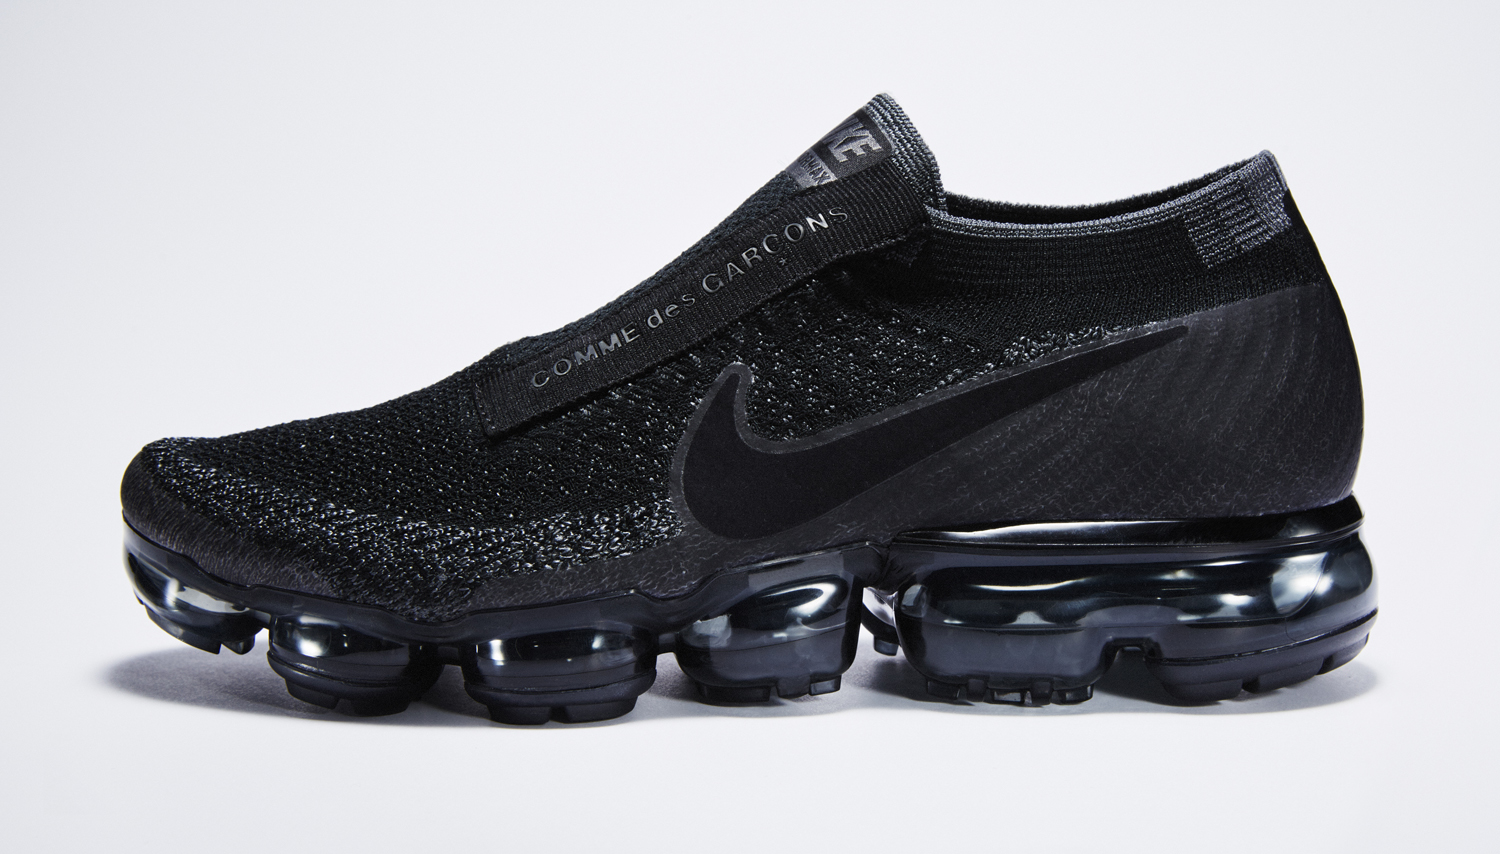 173a0e8e8bc58 Image via Nike Black Nike Air VaporMax Comme des Garcons Profile